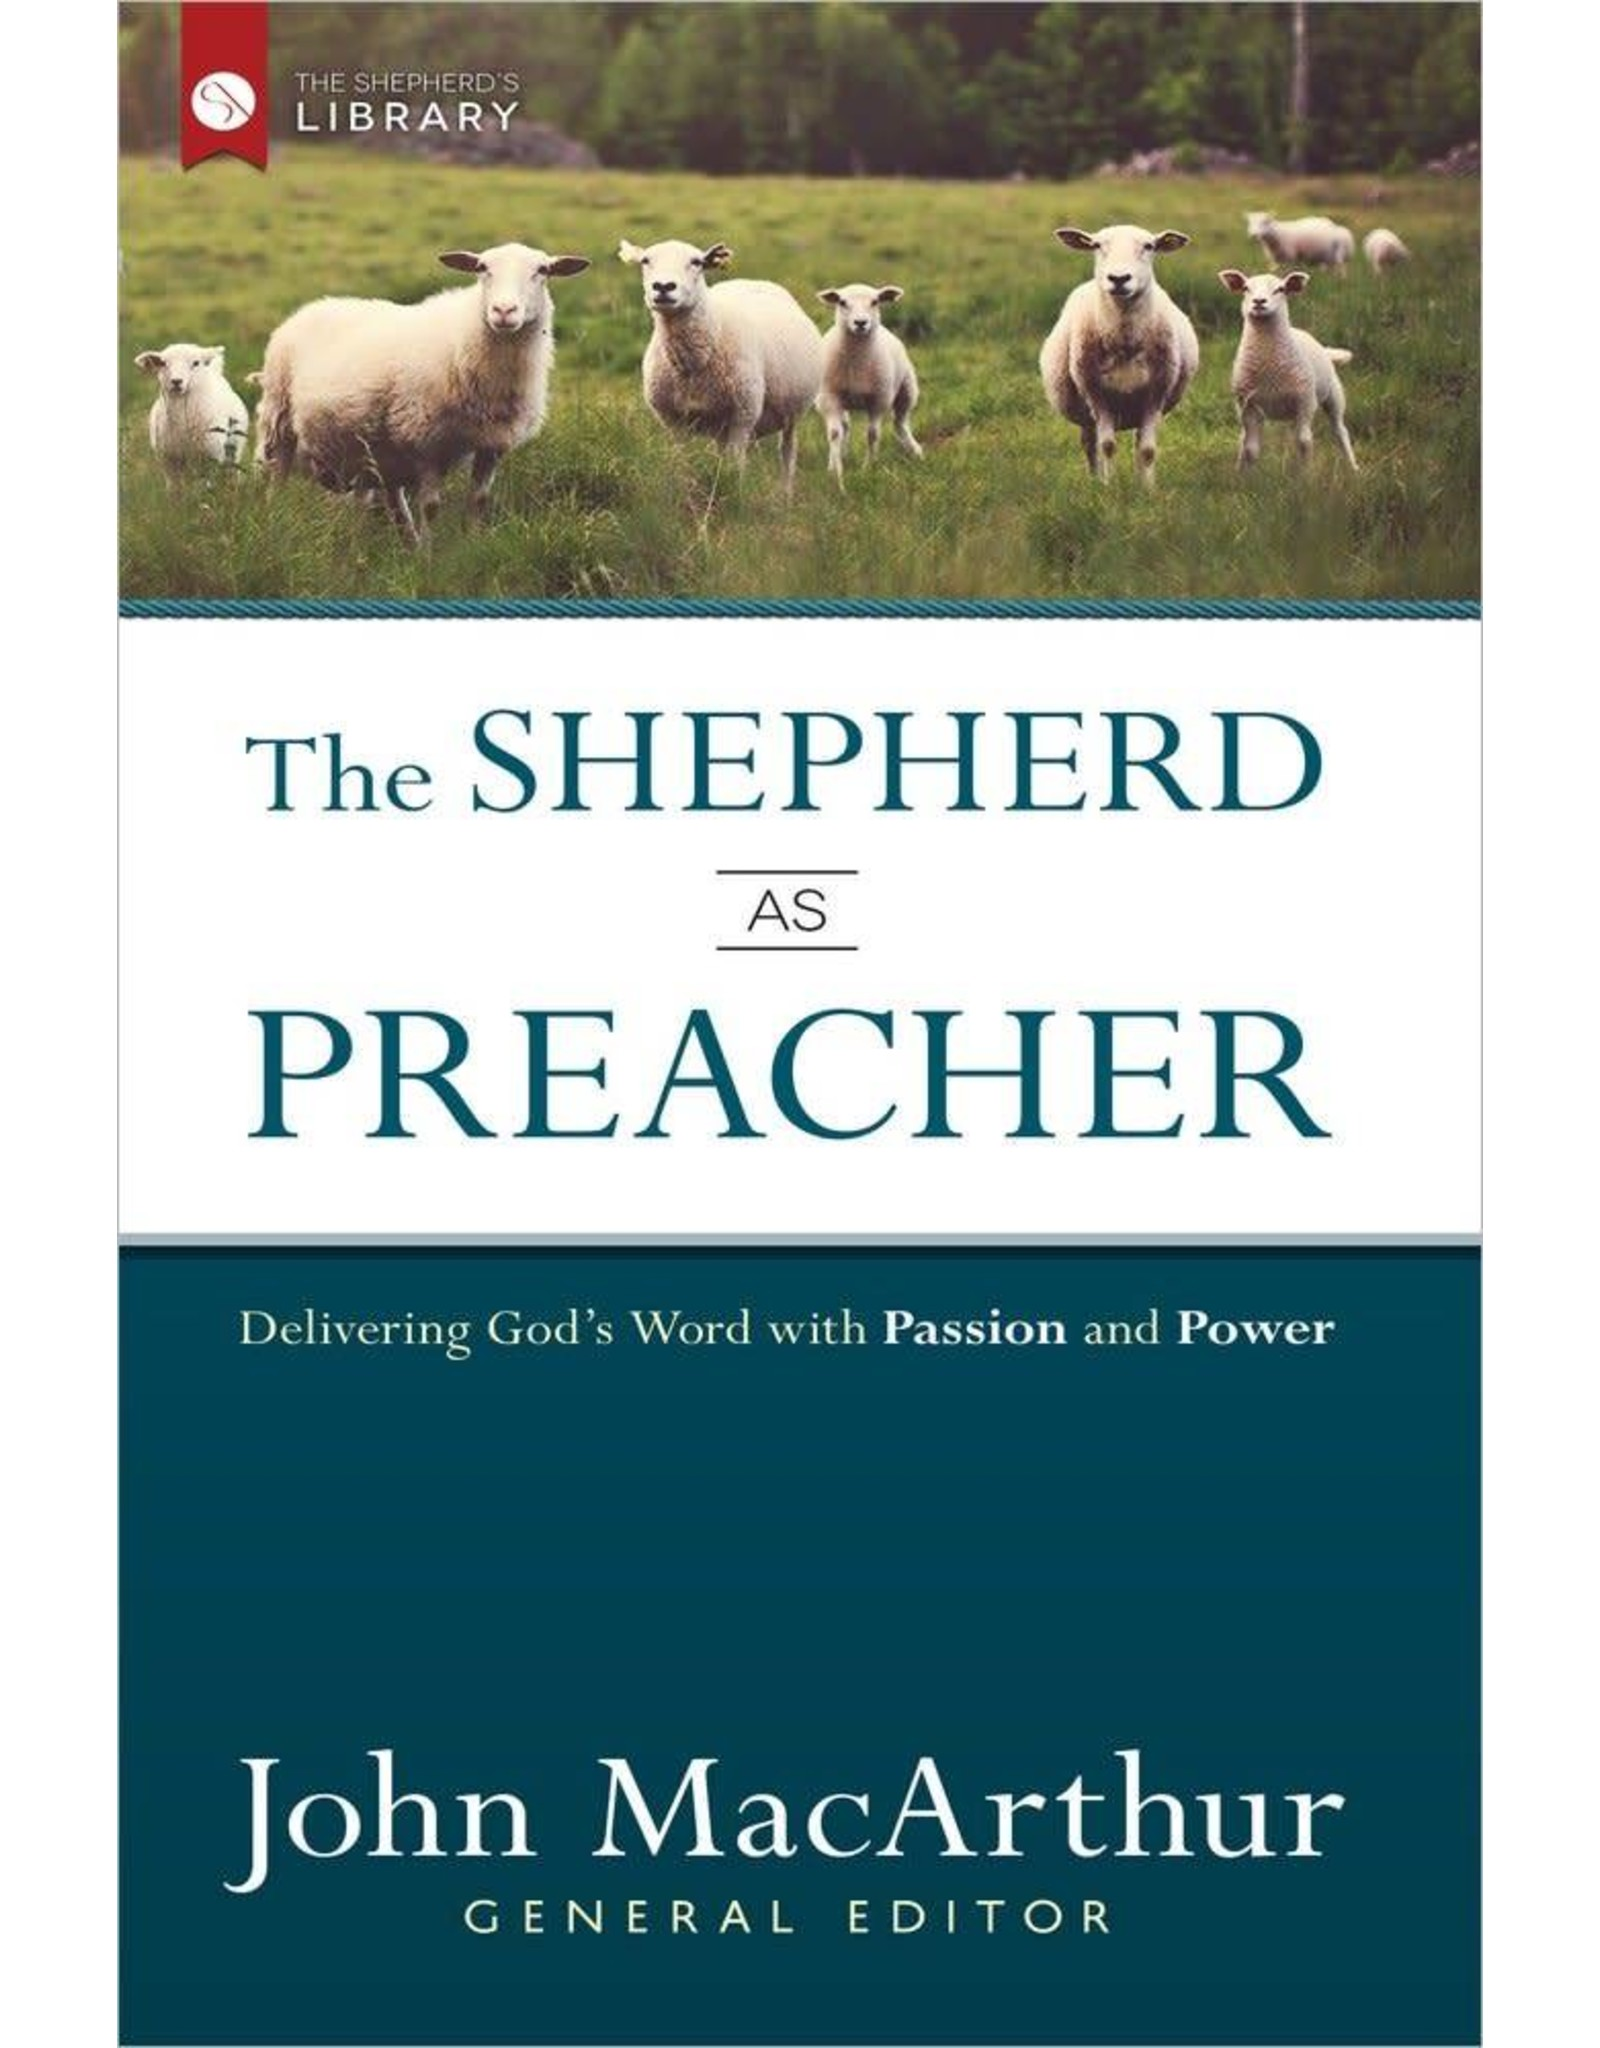 Harvest House Publishers The Shepherd as Preacher: Delivering God's Word with Passion and Power